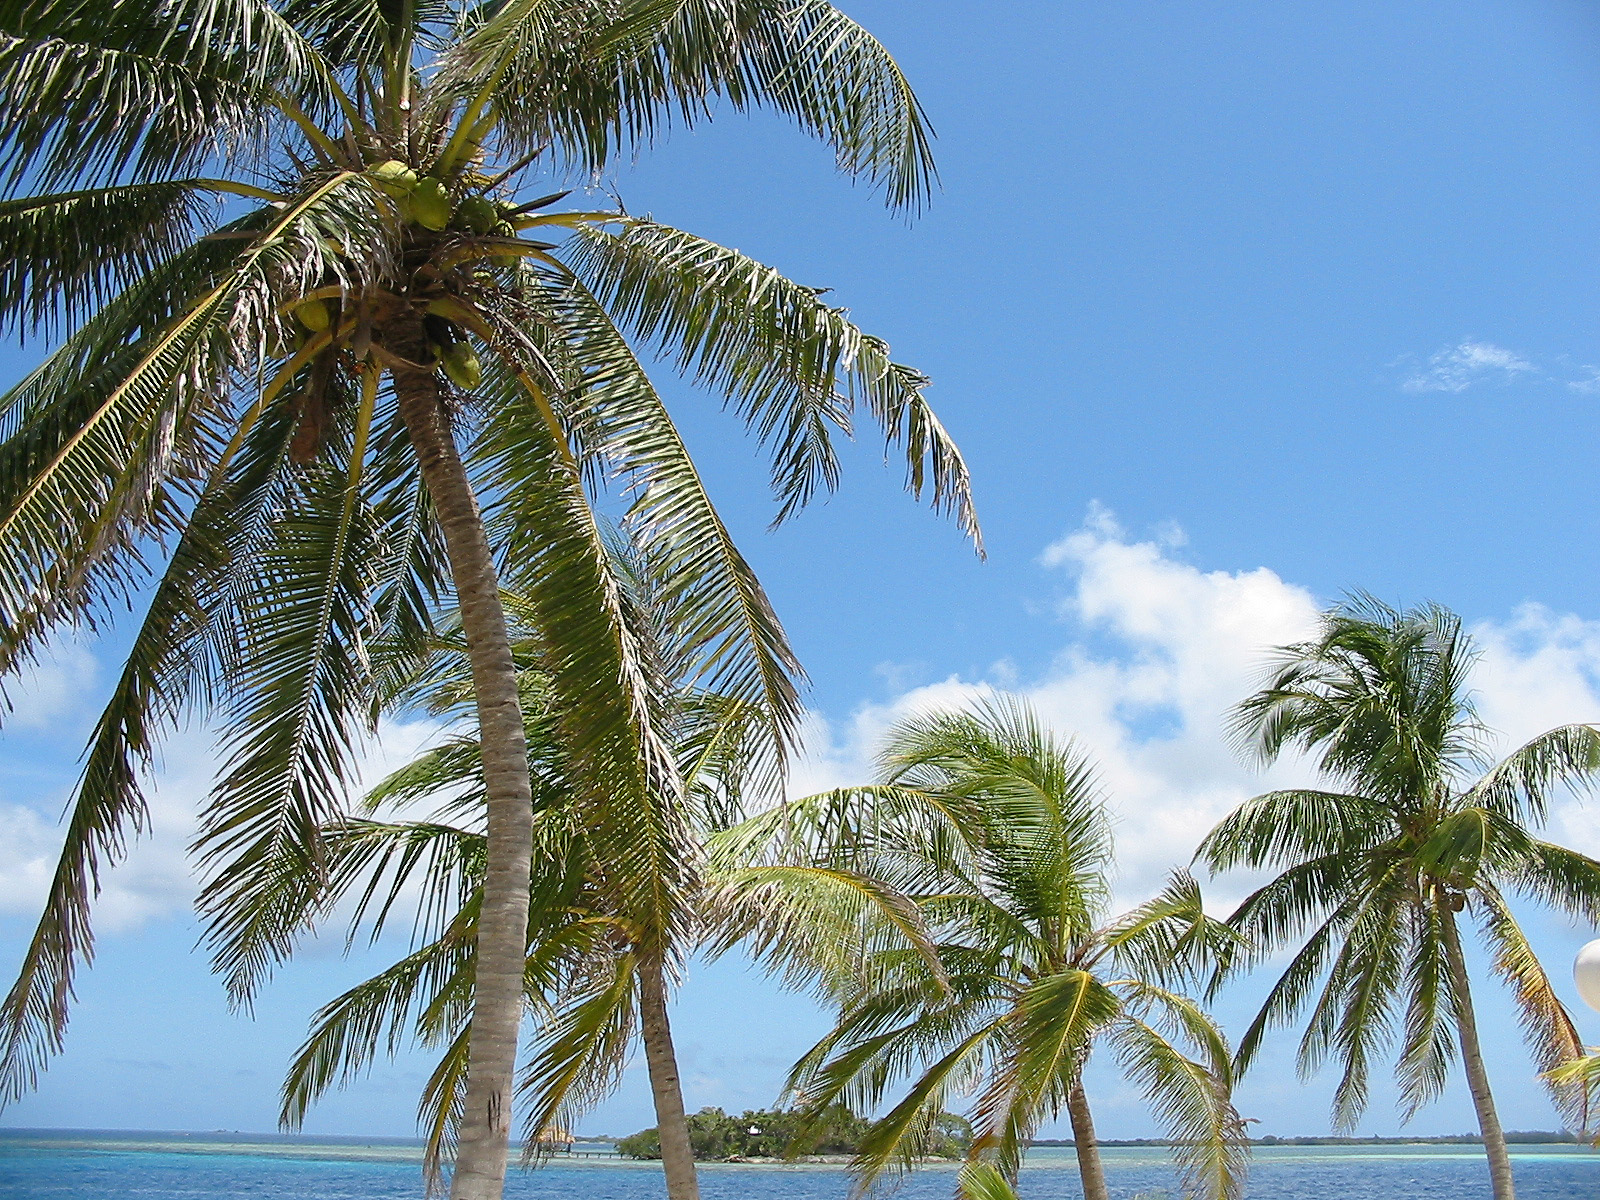 HD Wallpapers palm tree wallpapers hd 1600x1200